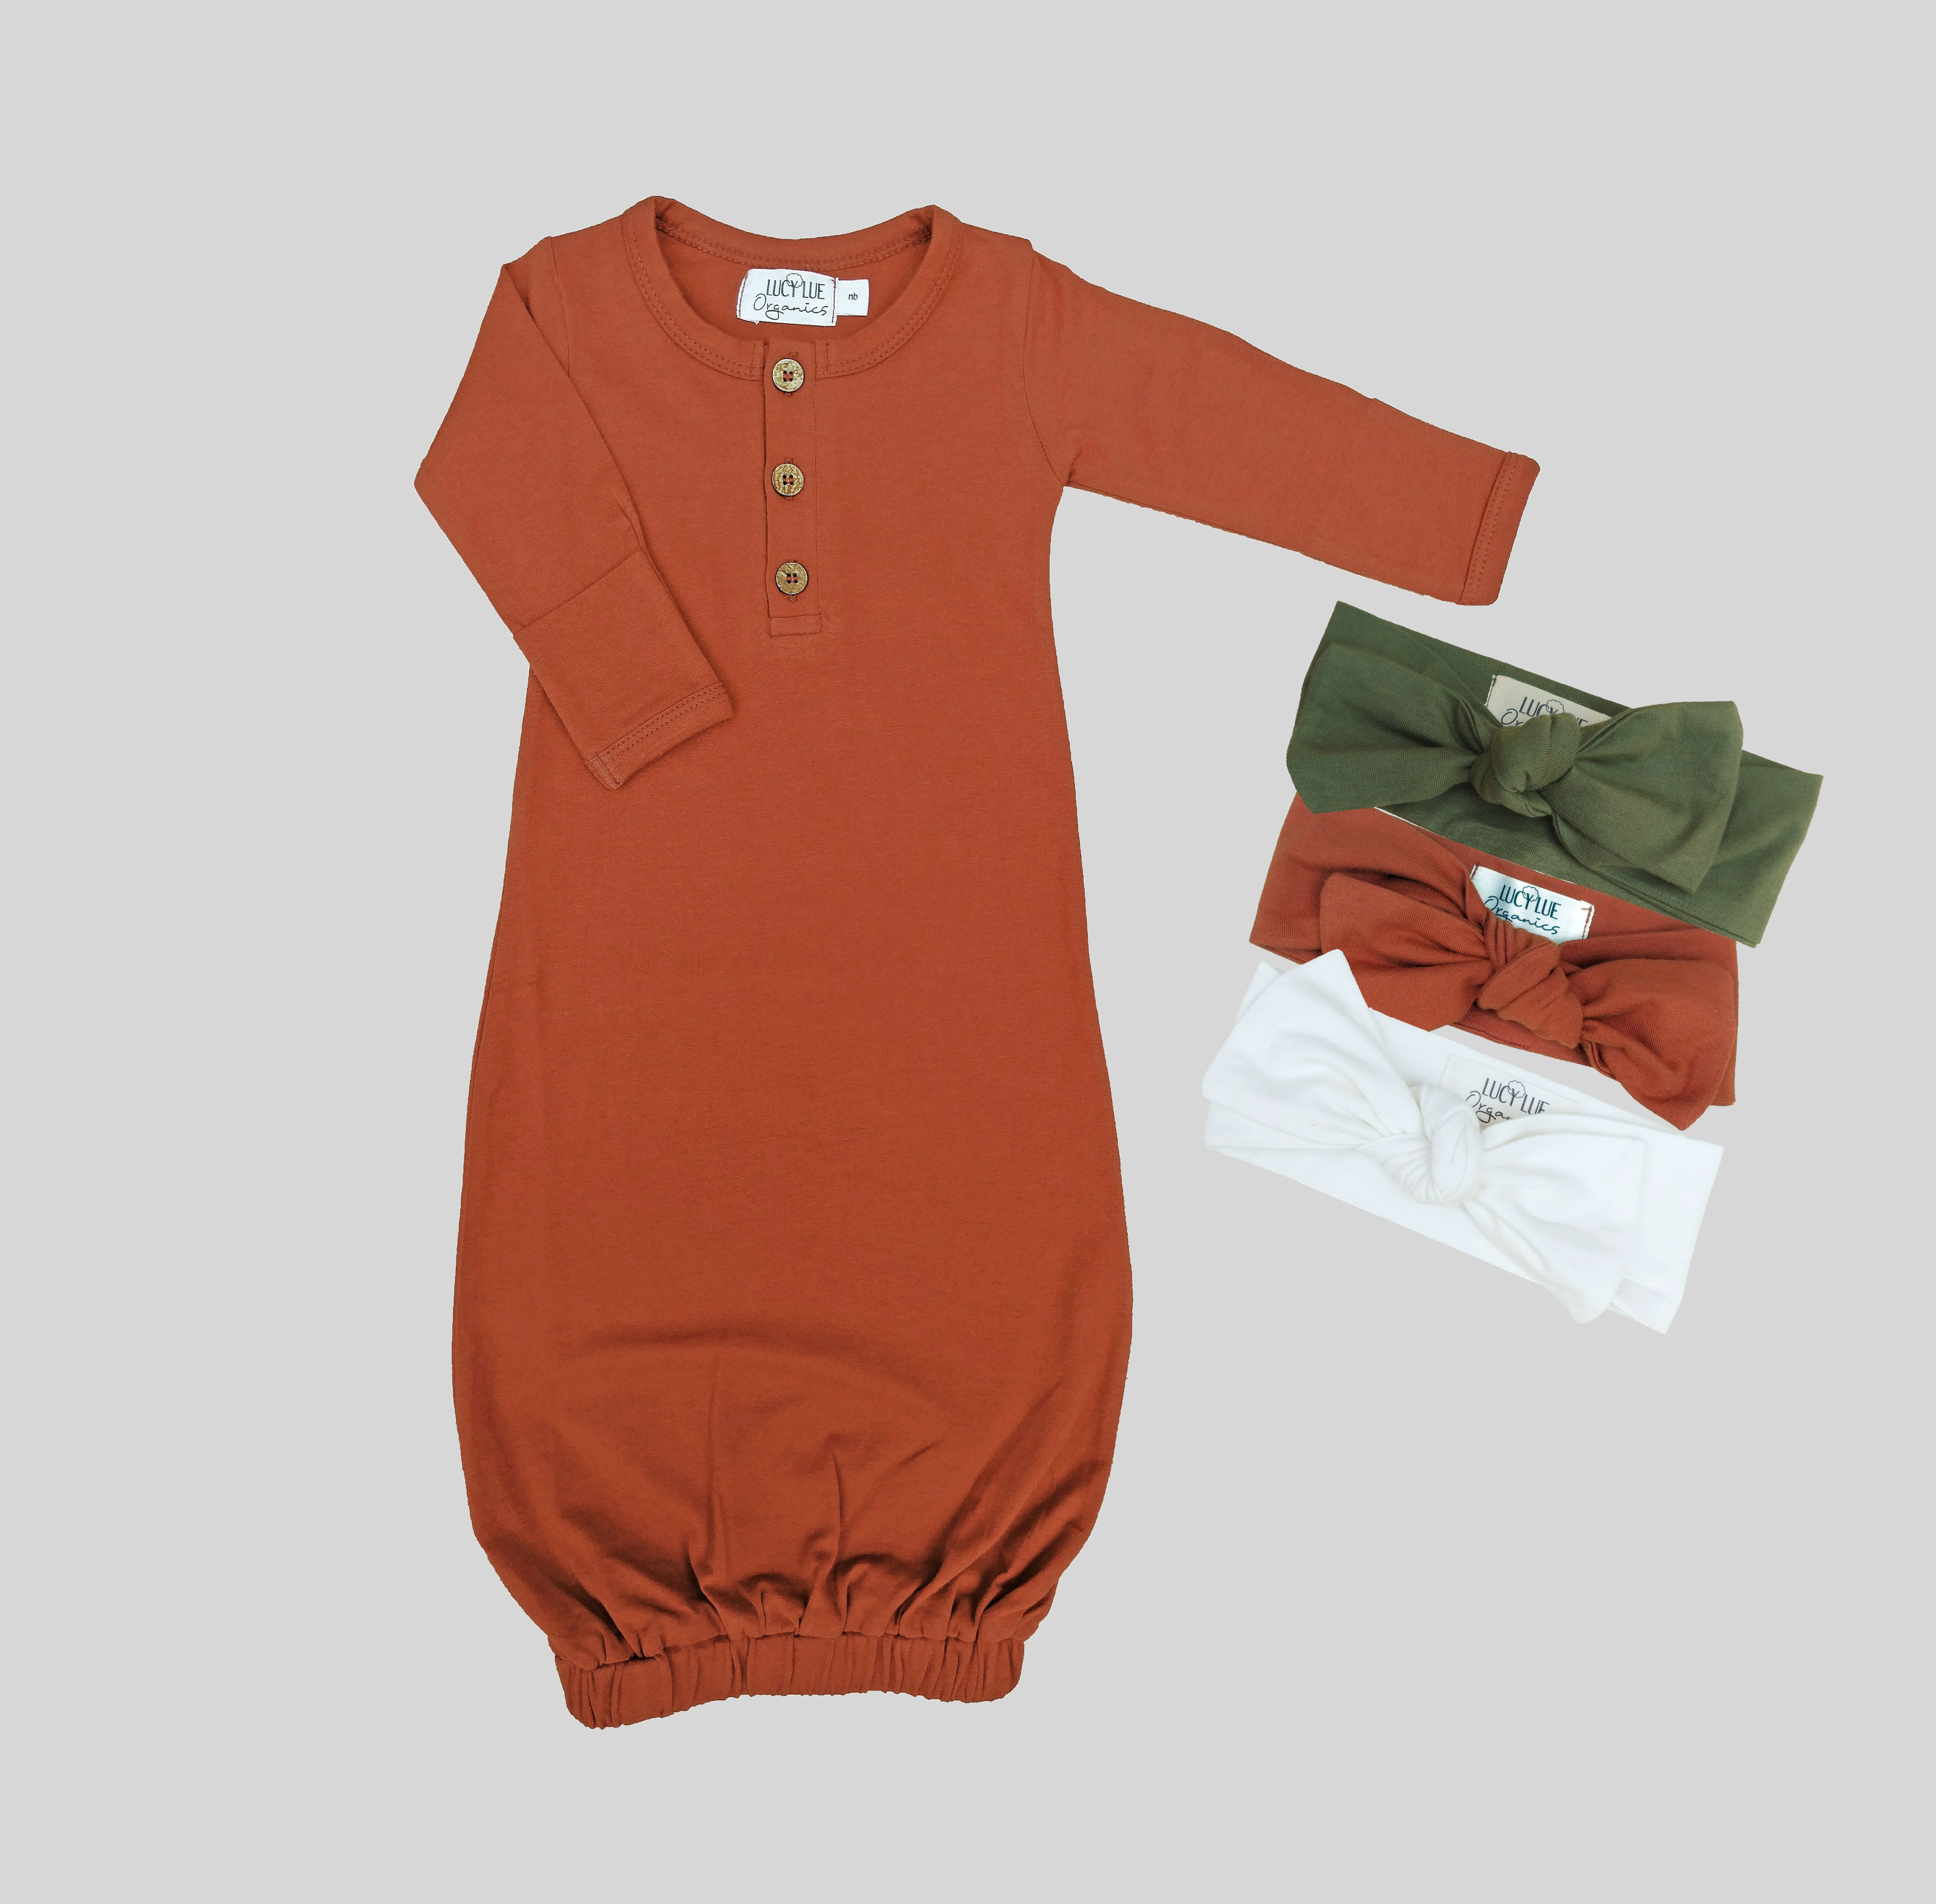 Modern Organic Cotton Baby Gown by Lucy Lue Organics. For the best in modern organic baby clothes, shop lucylueorganics.com.  #shopthelook #babymusthave #babygirl #babyboy #babyshop #babyclothes